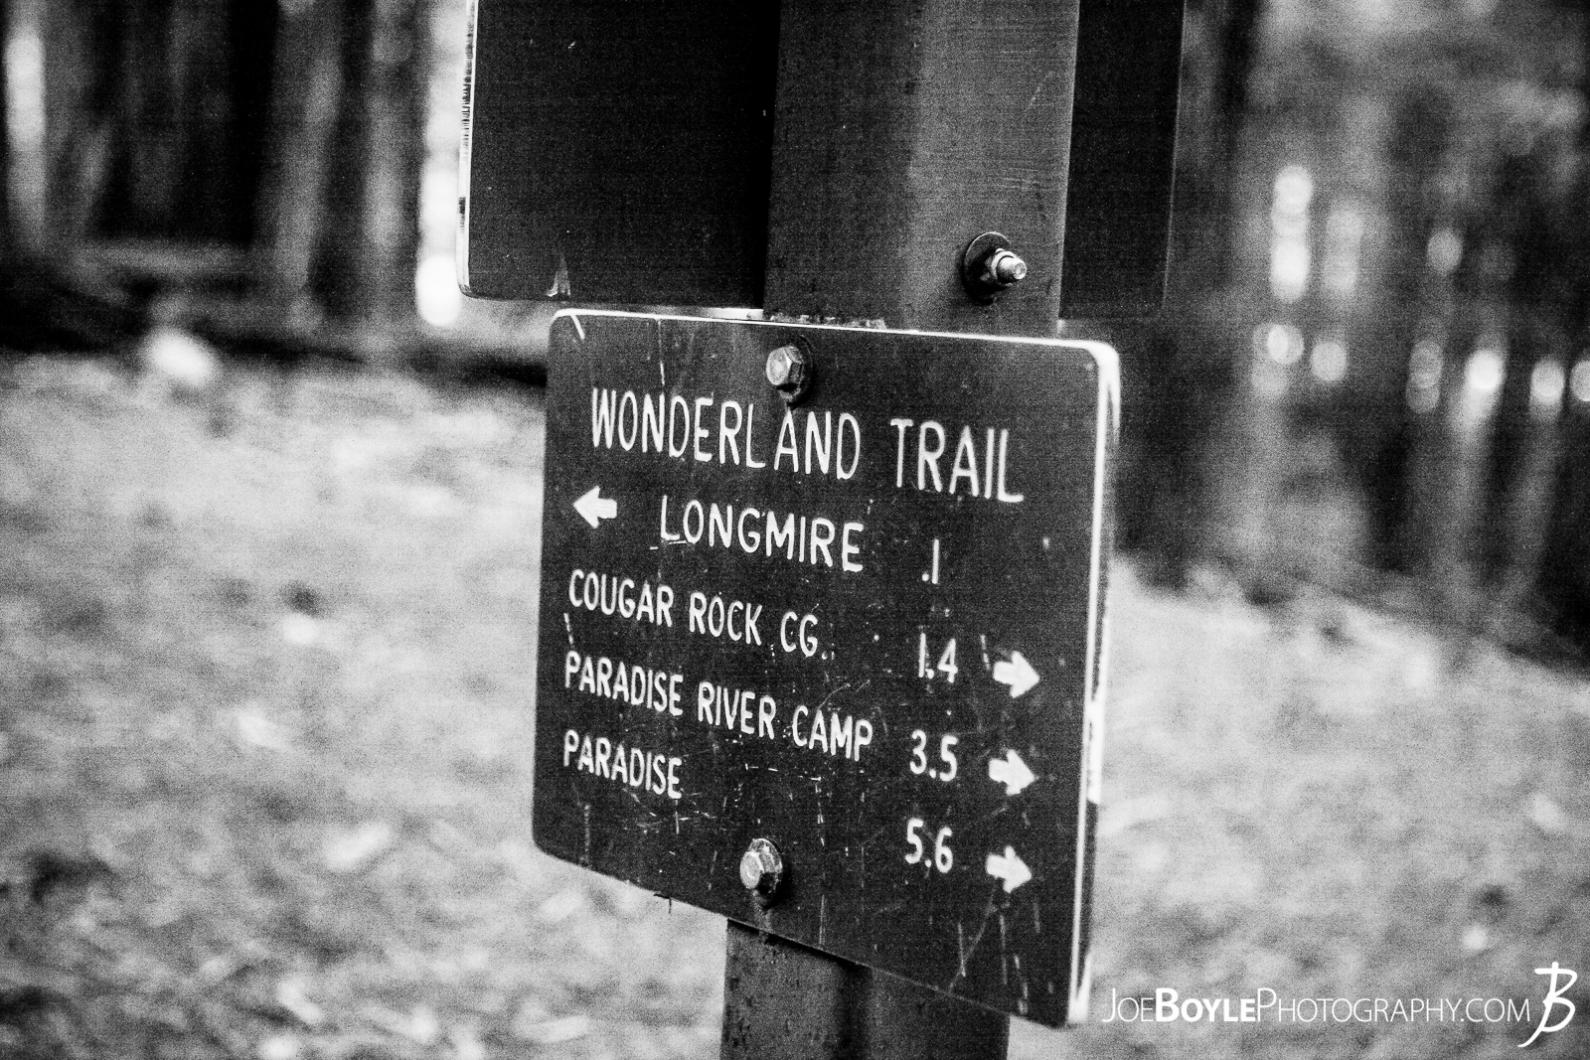 wonderland-trail-trailhead-sign